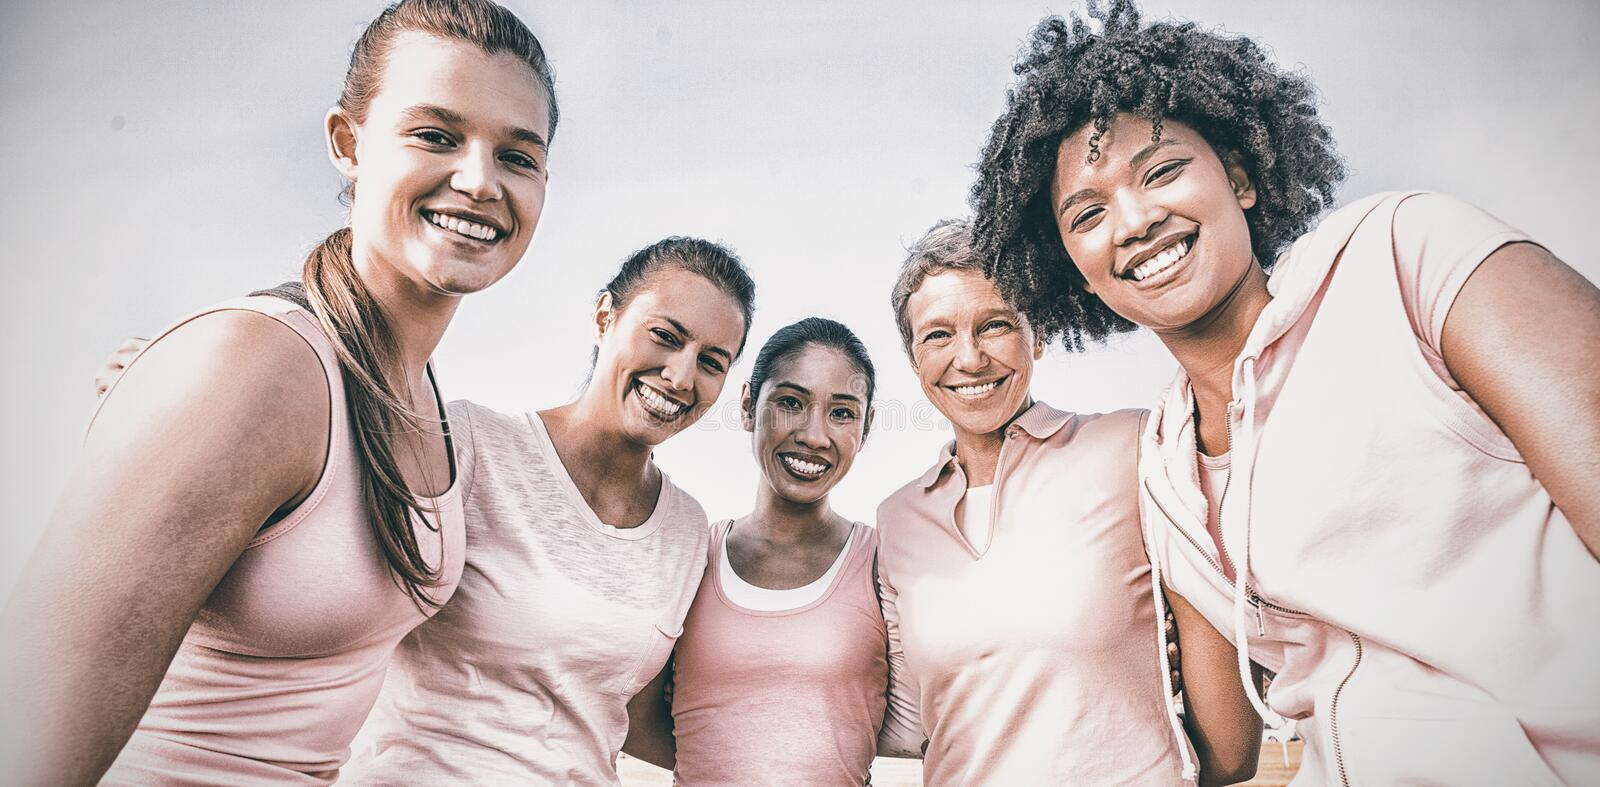 Smiling women wearing pink for breast cancer. Portrait of smiling women wearing pink for breast cancer at park royalty free stock image